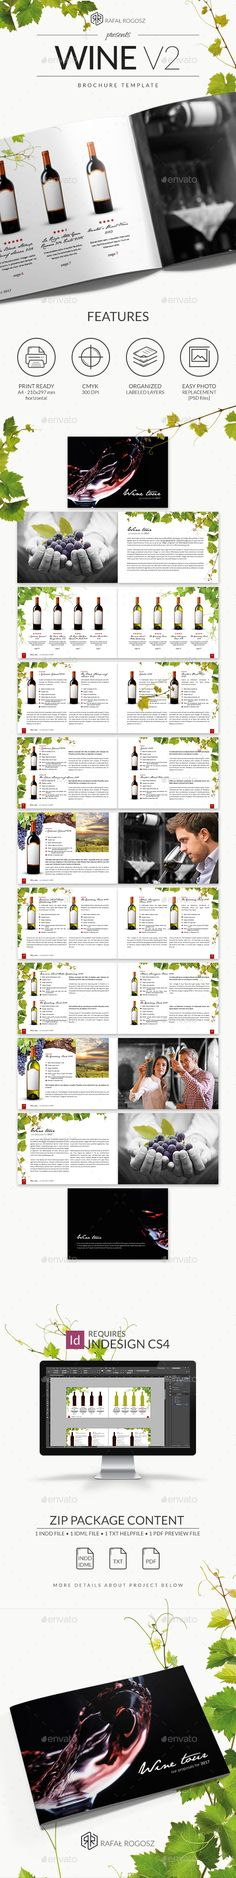 Wine Brochure v2 - #Brochures Print Templates Download Here: https://graphicriver.net/item/wine-brochure-v2/18632397?ref=suz_562geid